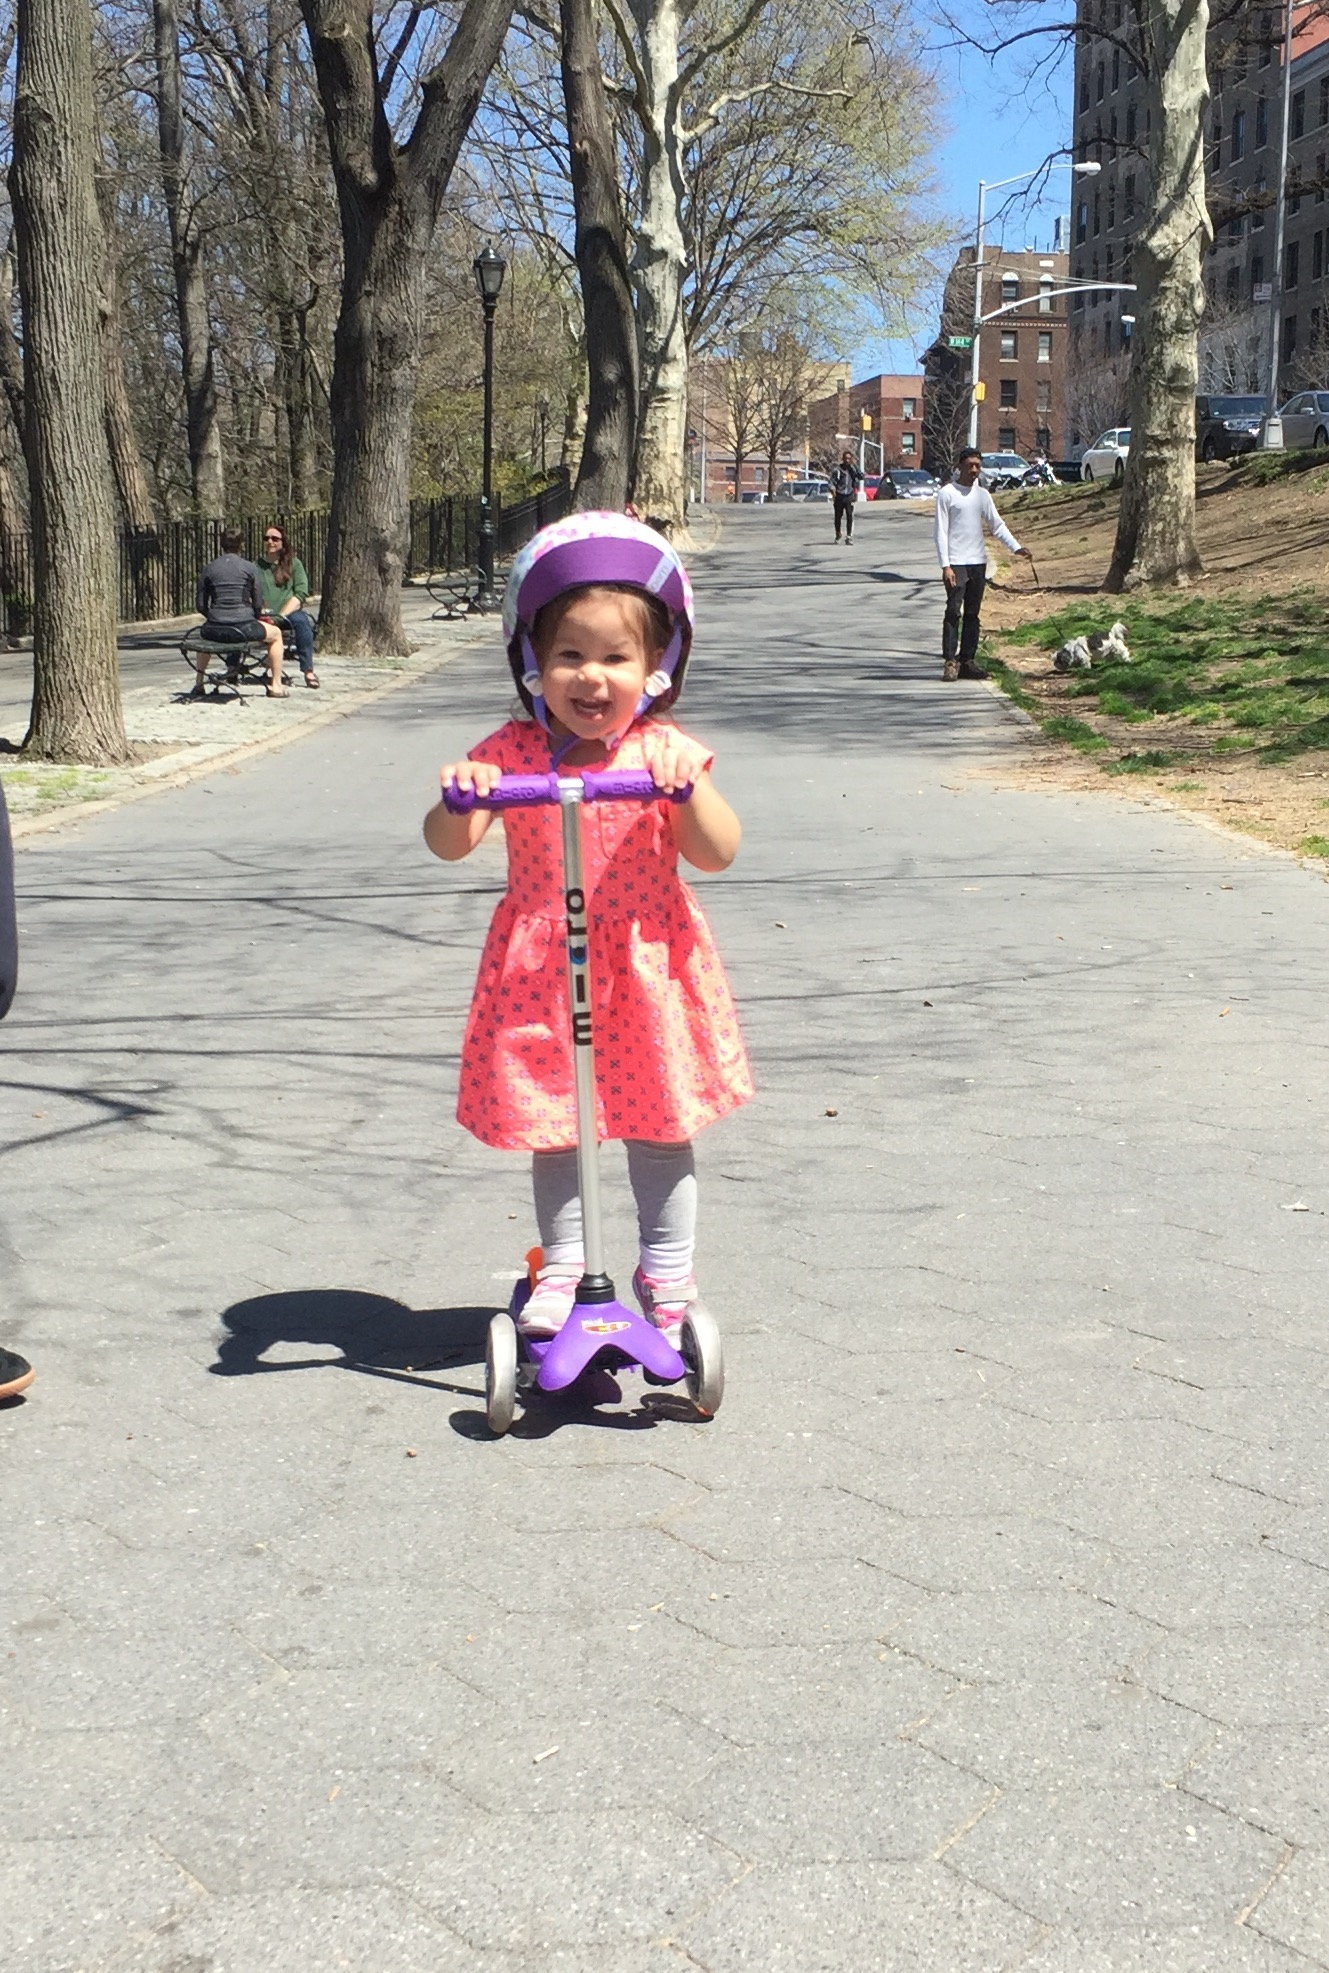 Practicing riding her scooter